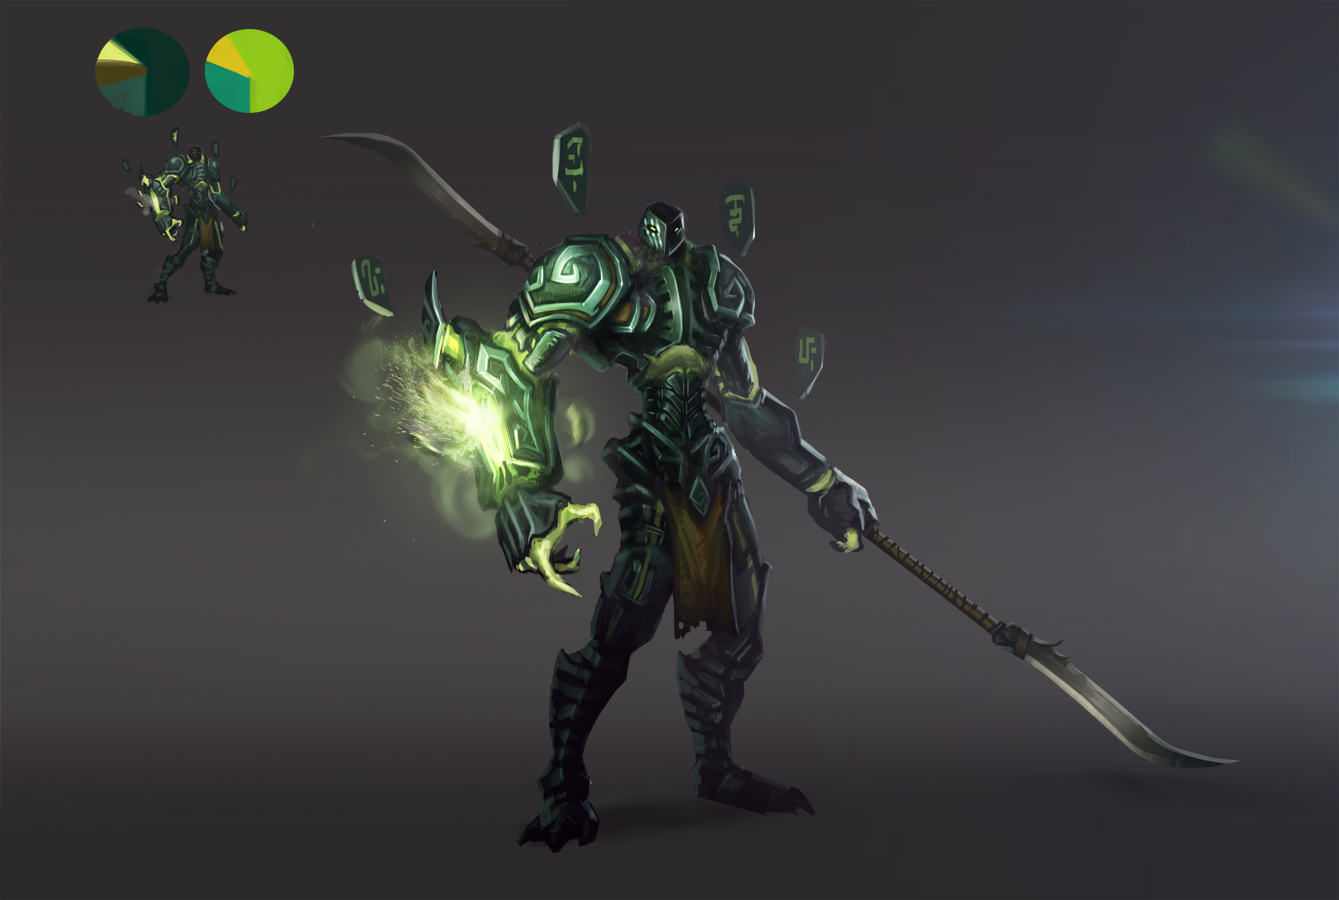 Dota Character Design Pdf : Dota hero concept by esbenlash on deviantart